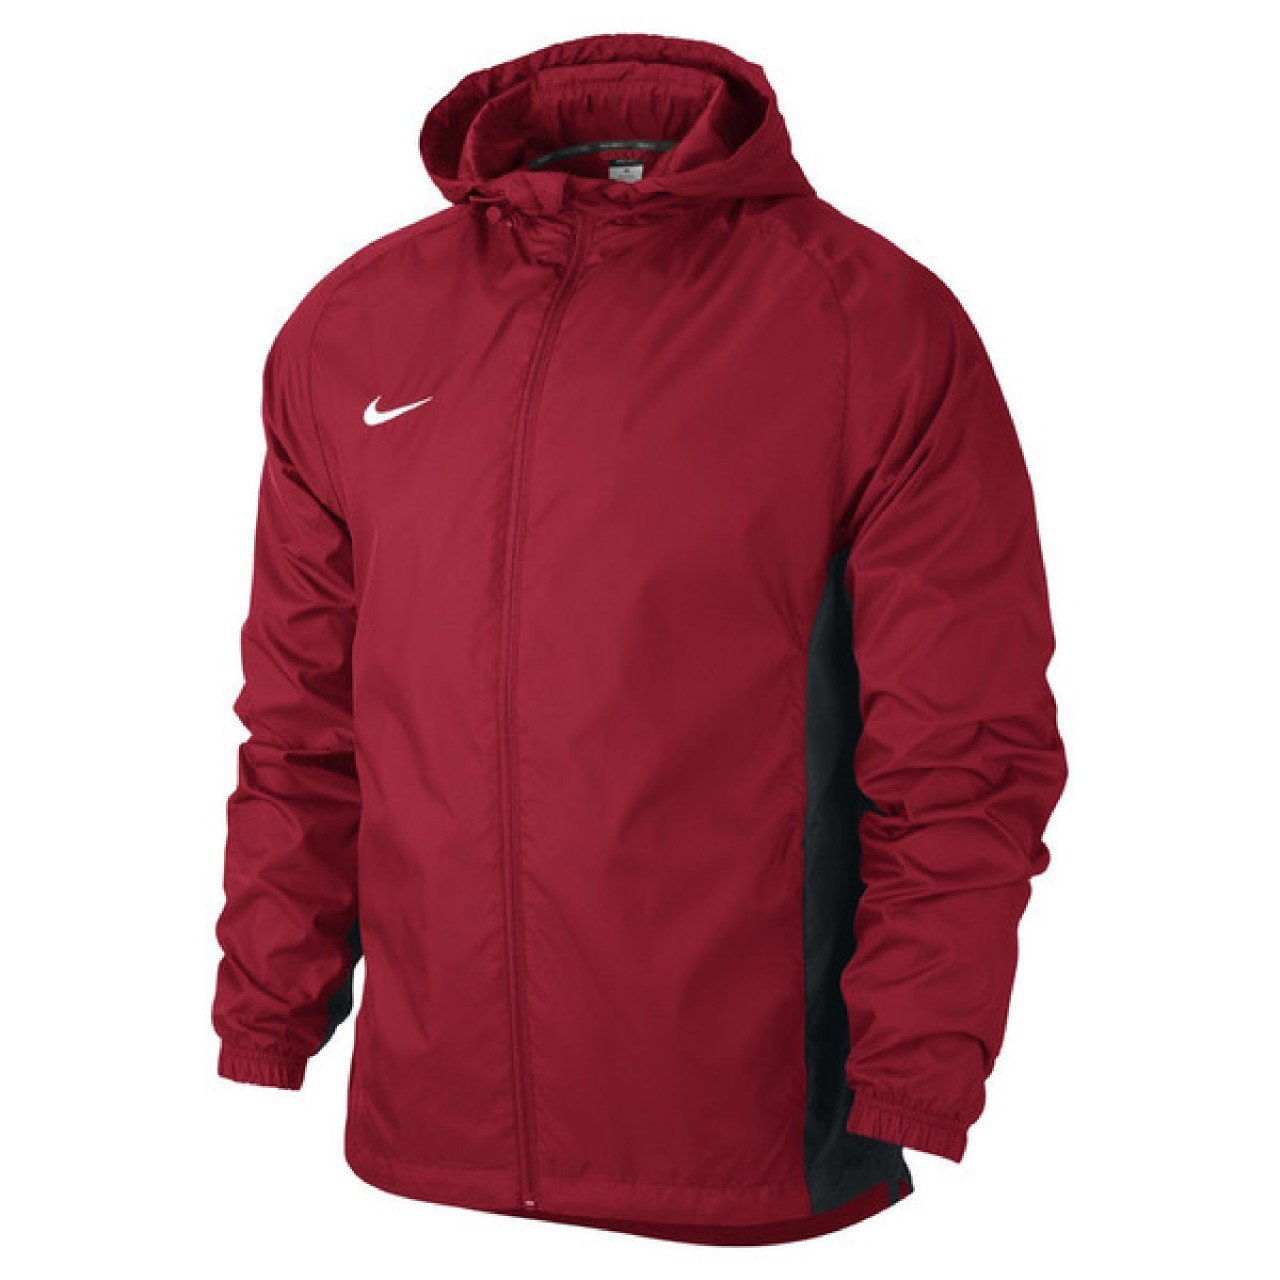 nike gps prix de la montre - NIKE Academy 14 Men's Waterproof Jacket: Amazon.co.uk: Sports ...